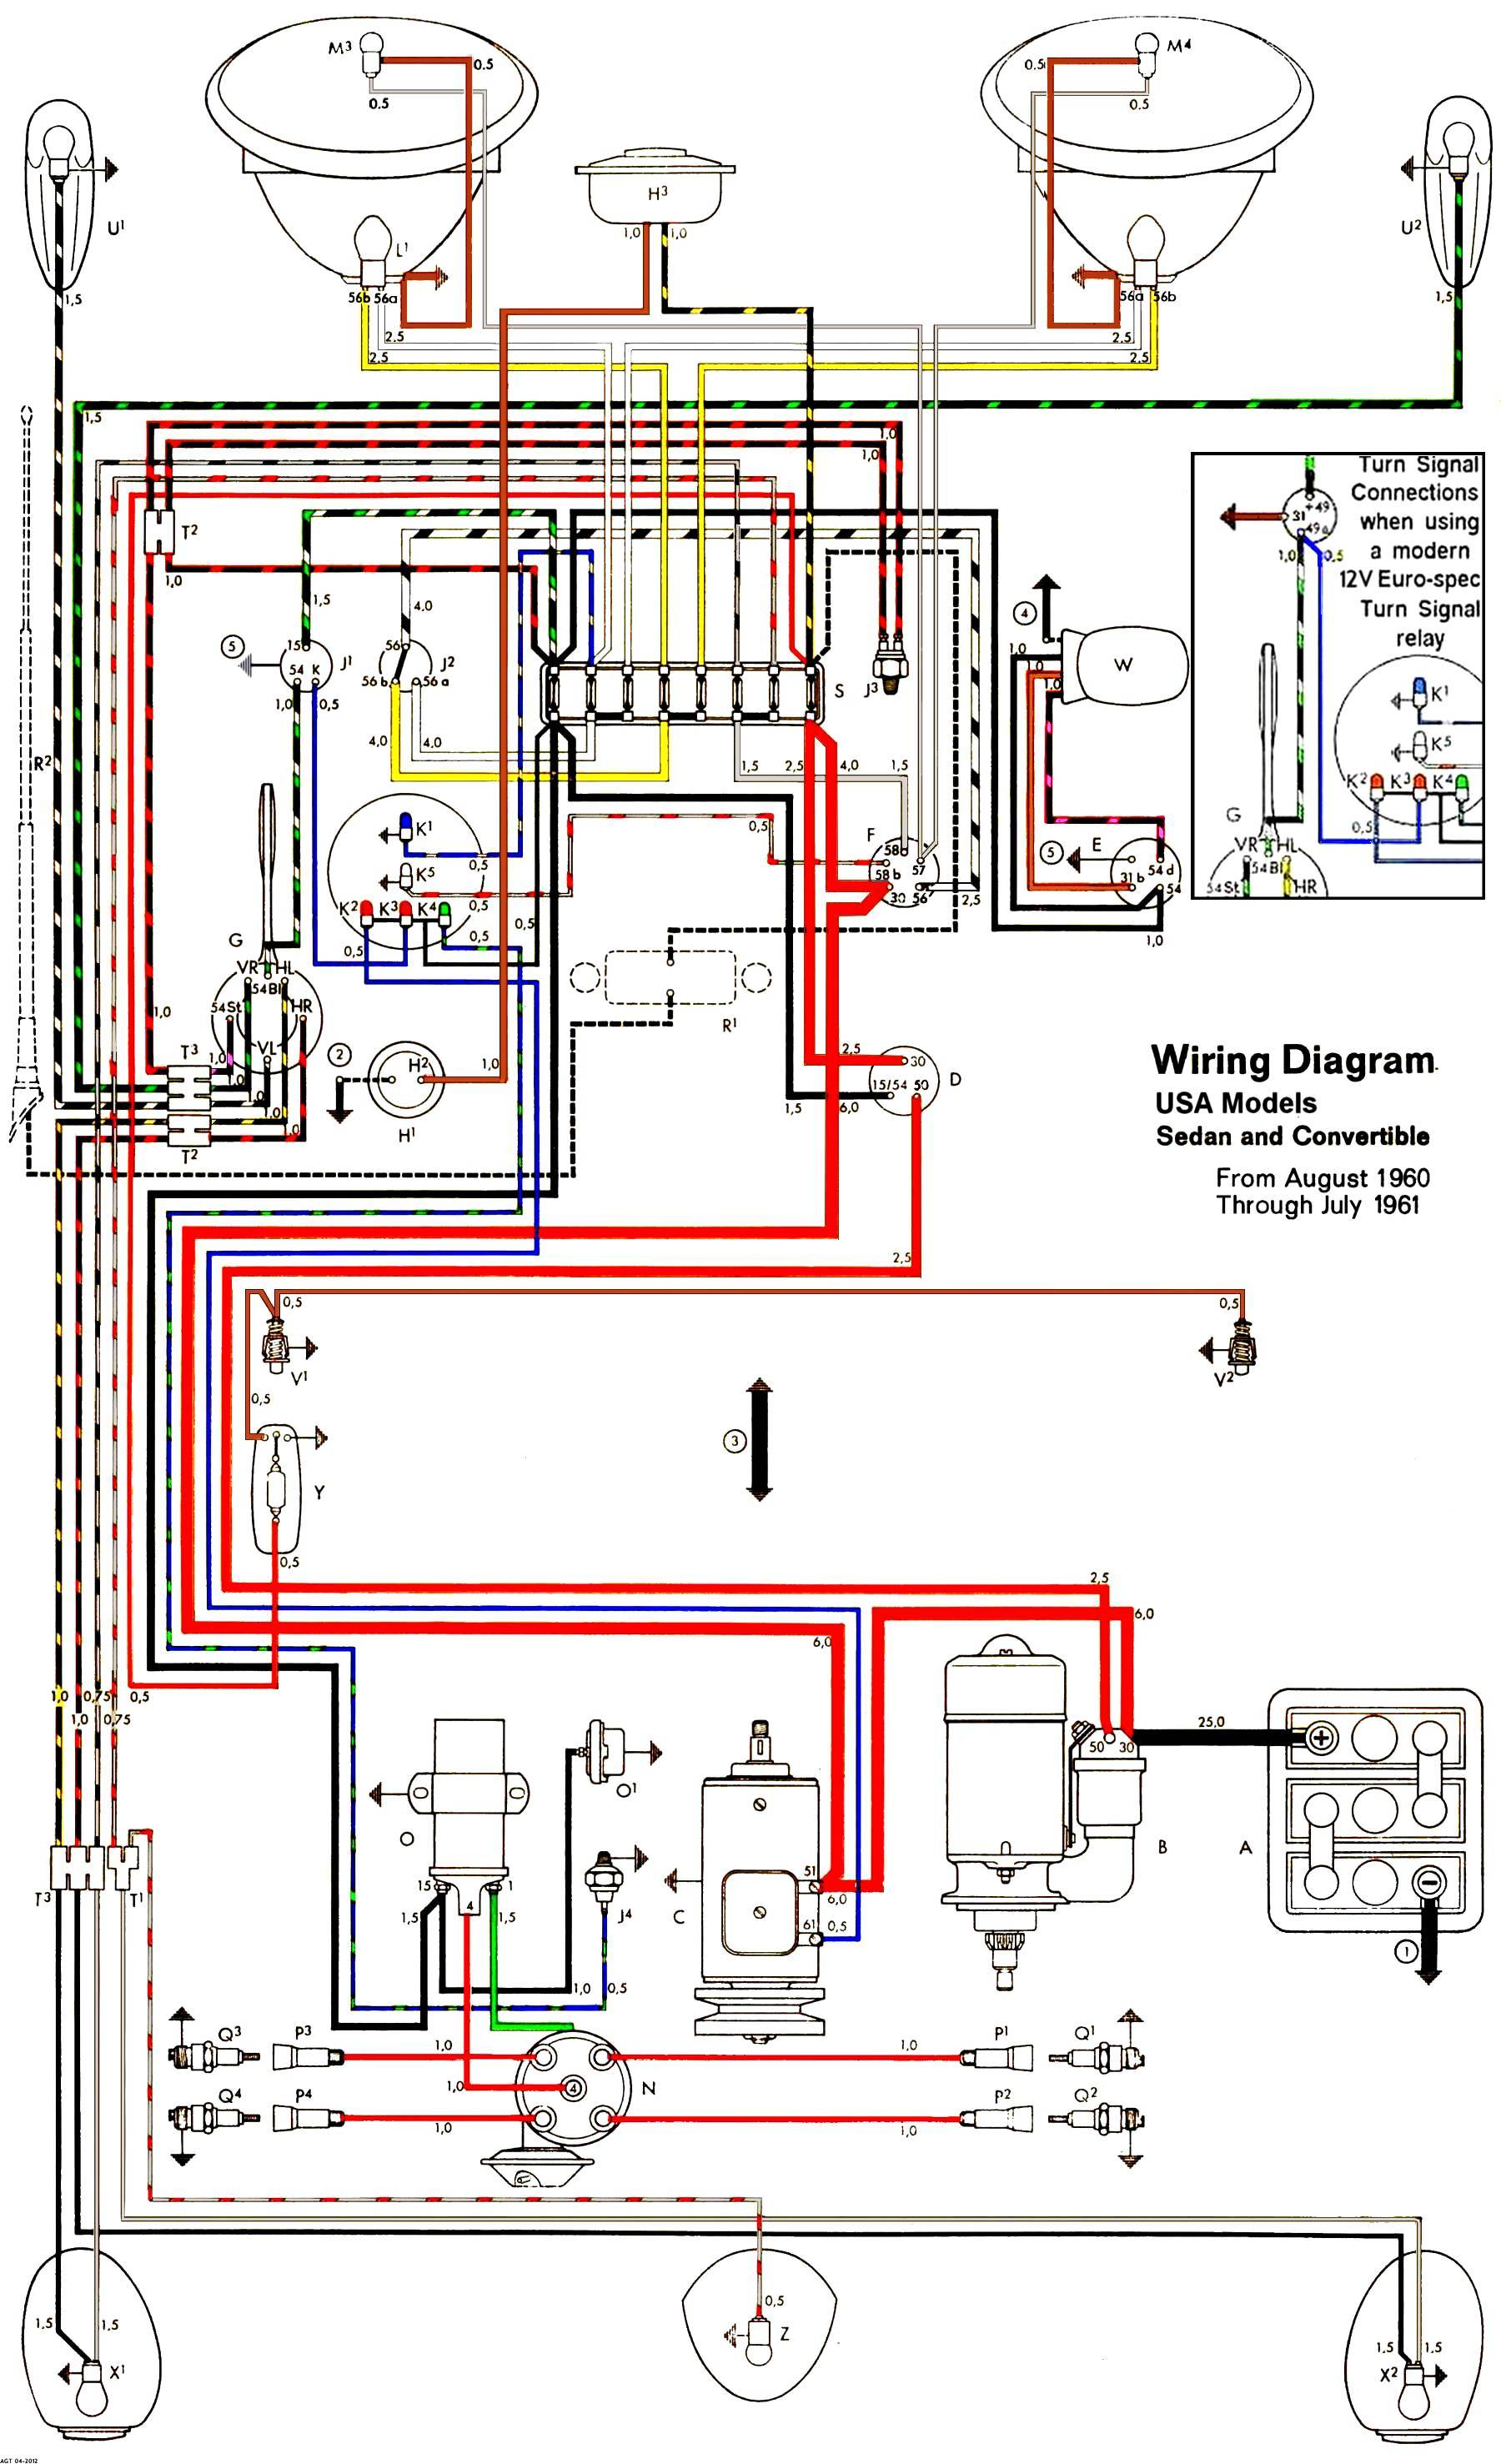 1961USA T1 thesamba com type 1 wiring diagrams Old Phone Jack Wiring at soozxer.org